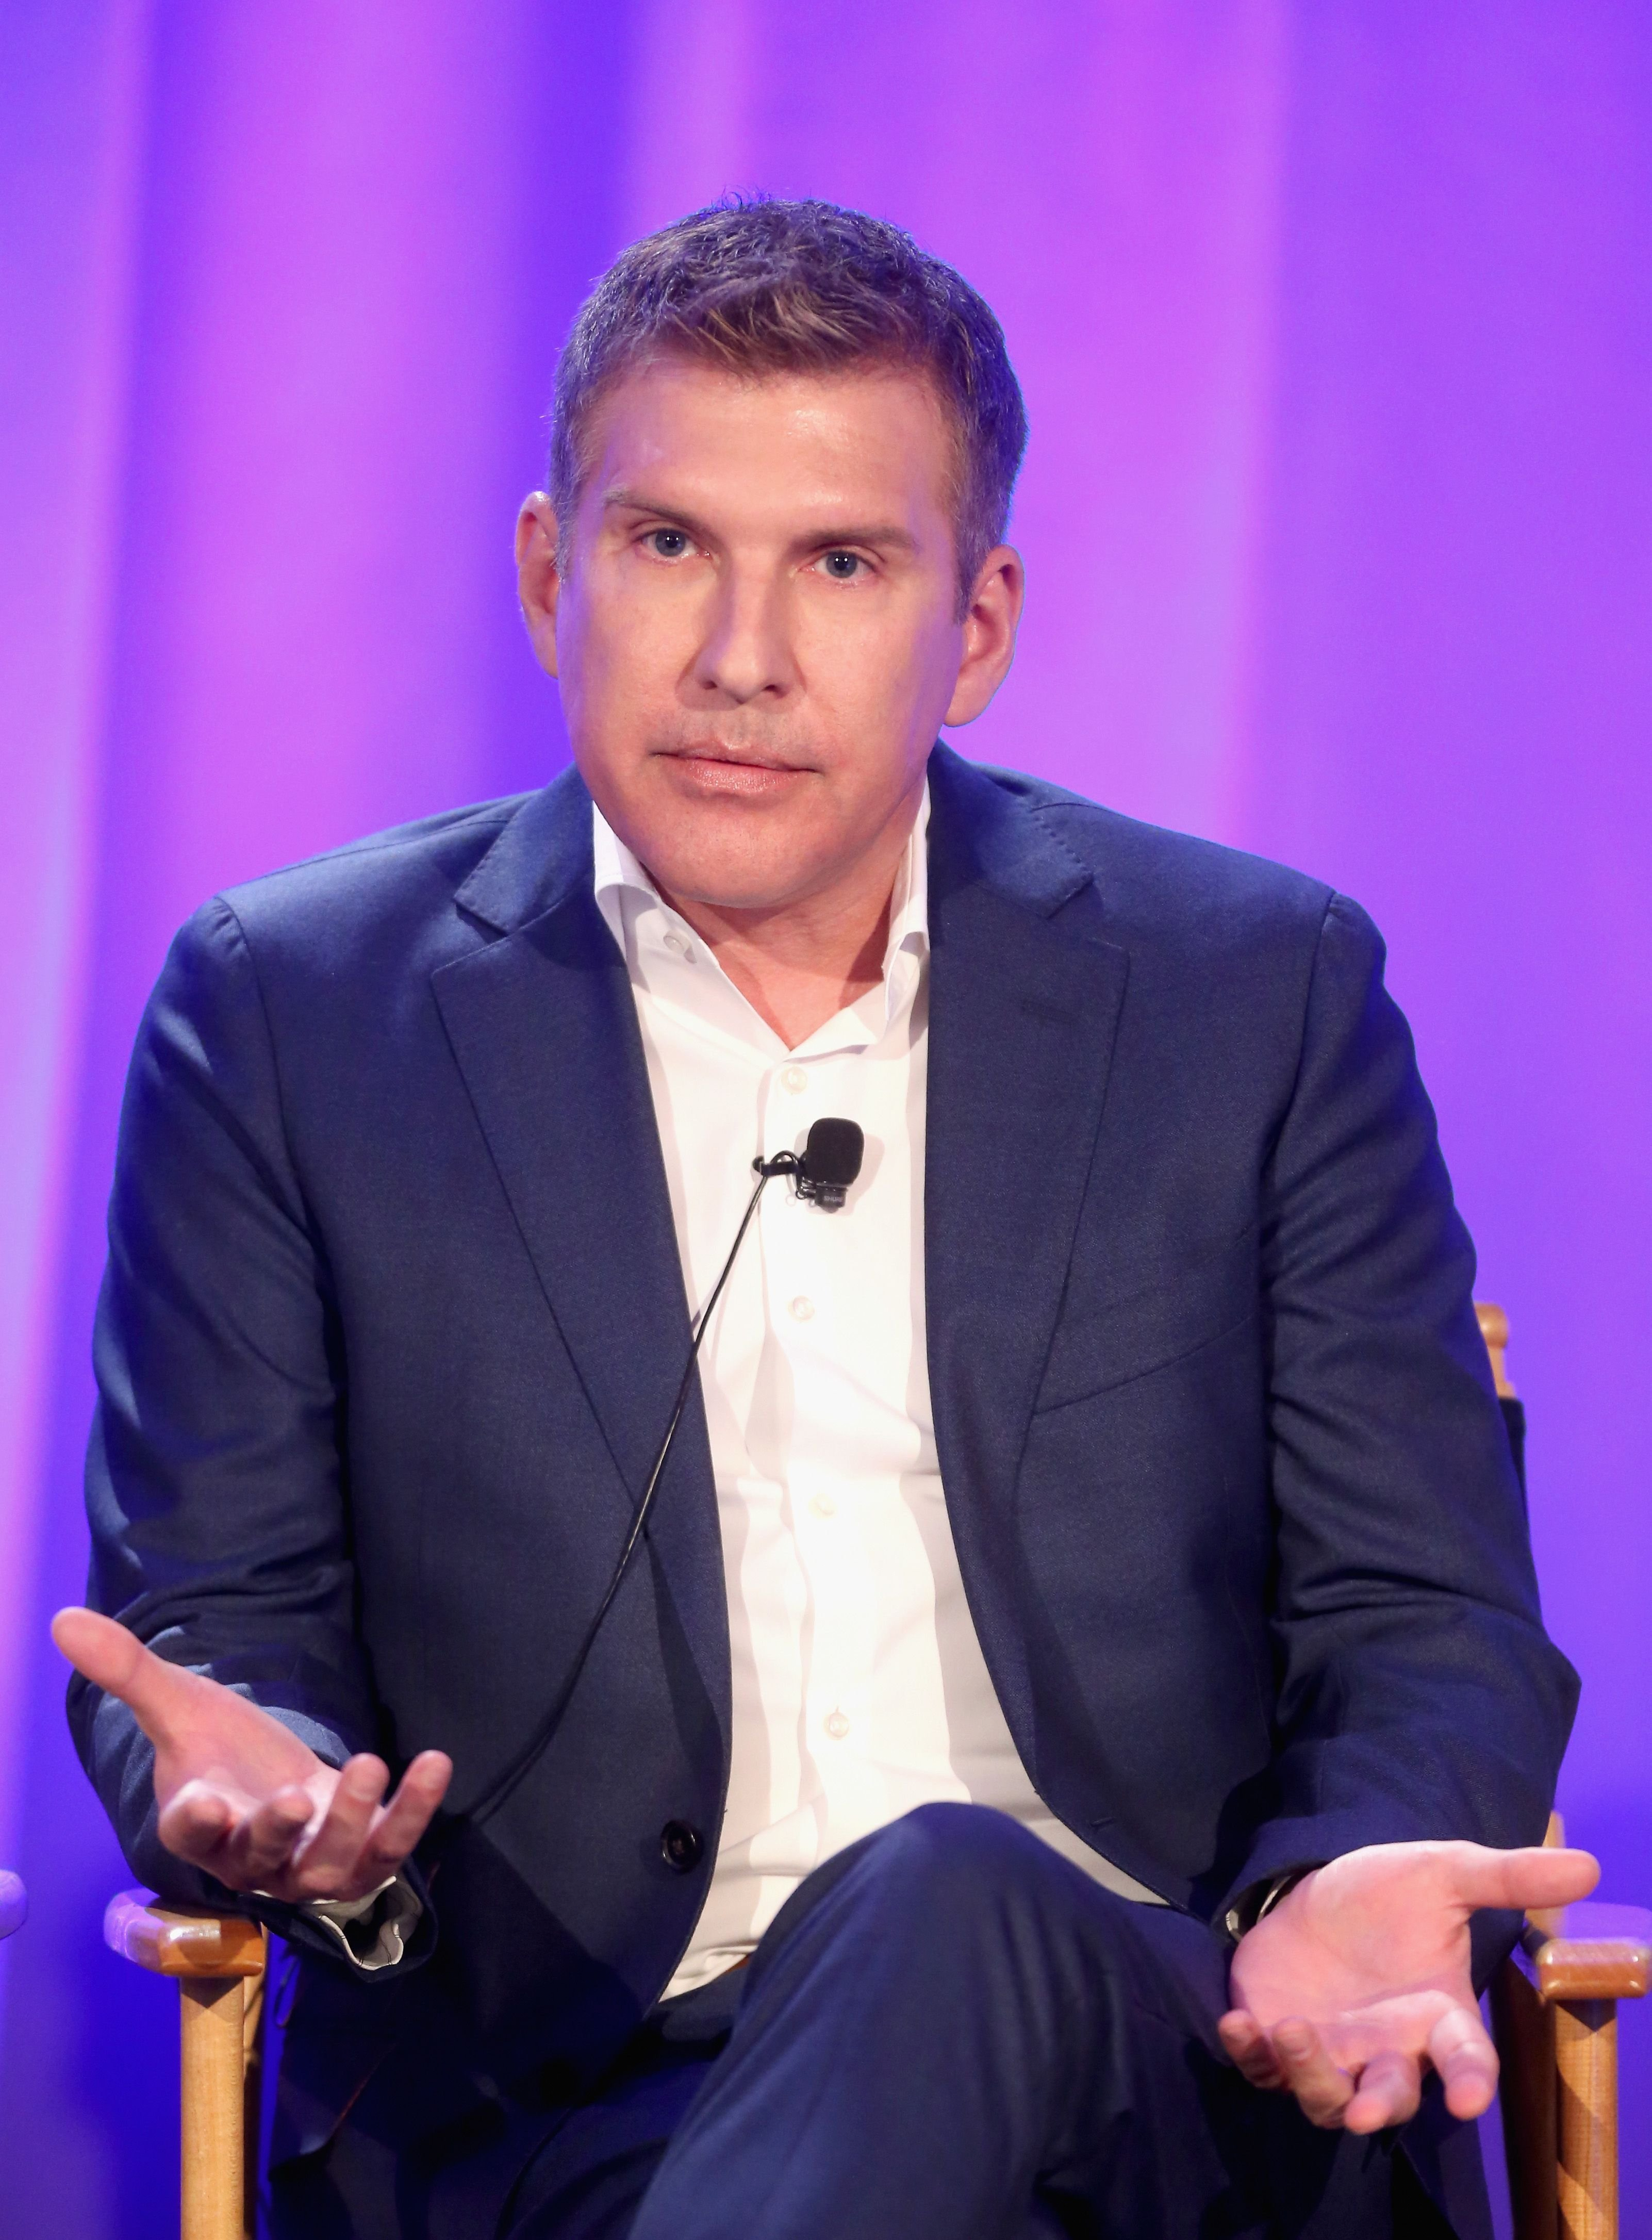 """Todd Chrisley at the """"Chrisley Knows Best"""" panel at the 2016 NBCUniversal Summer Press Day on April 1, 2016 